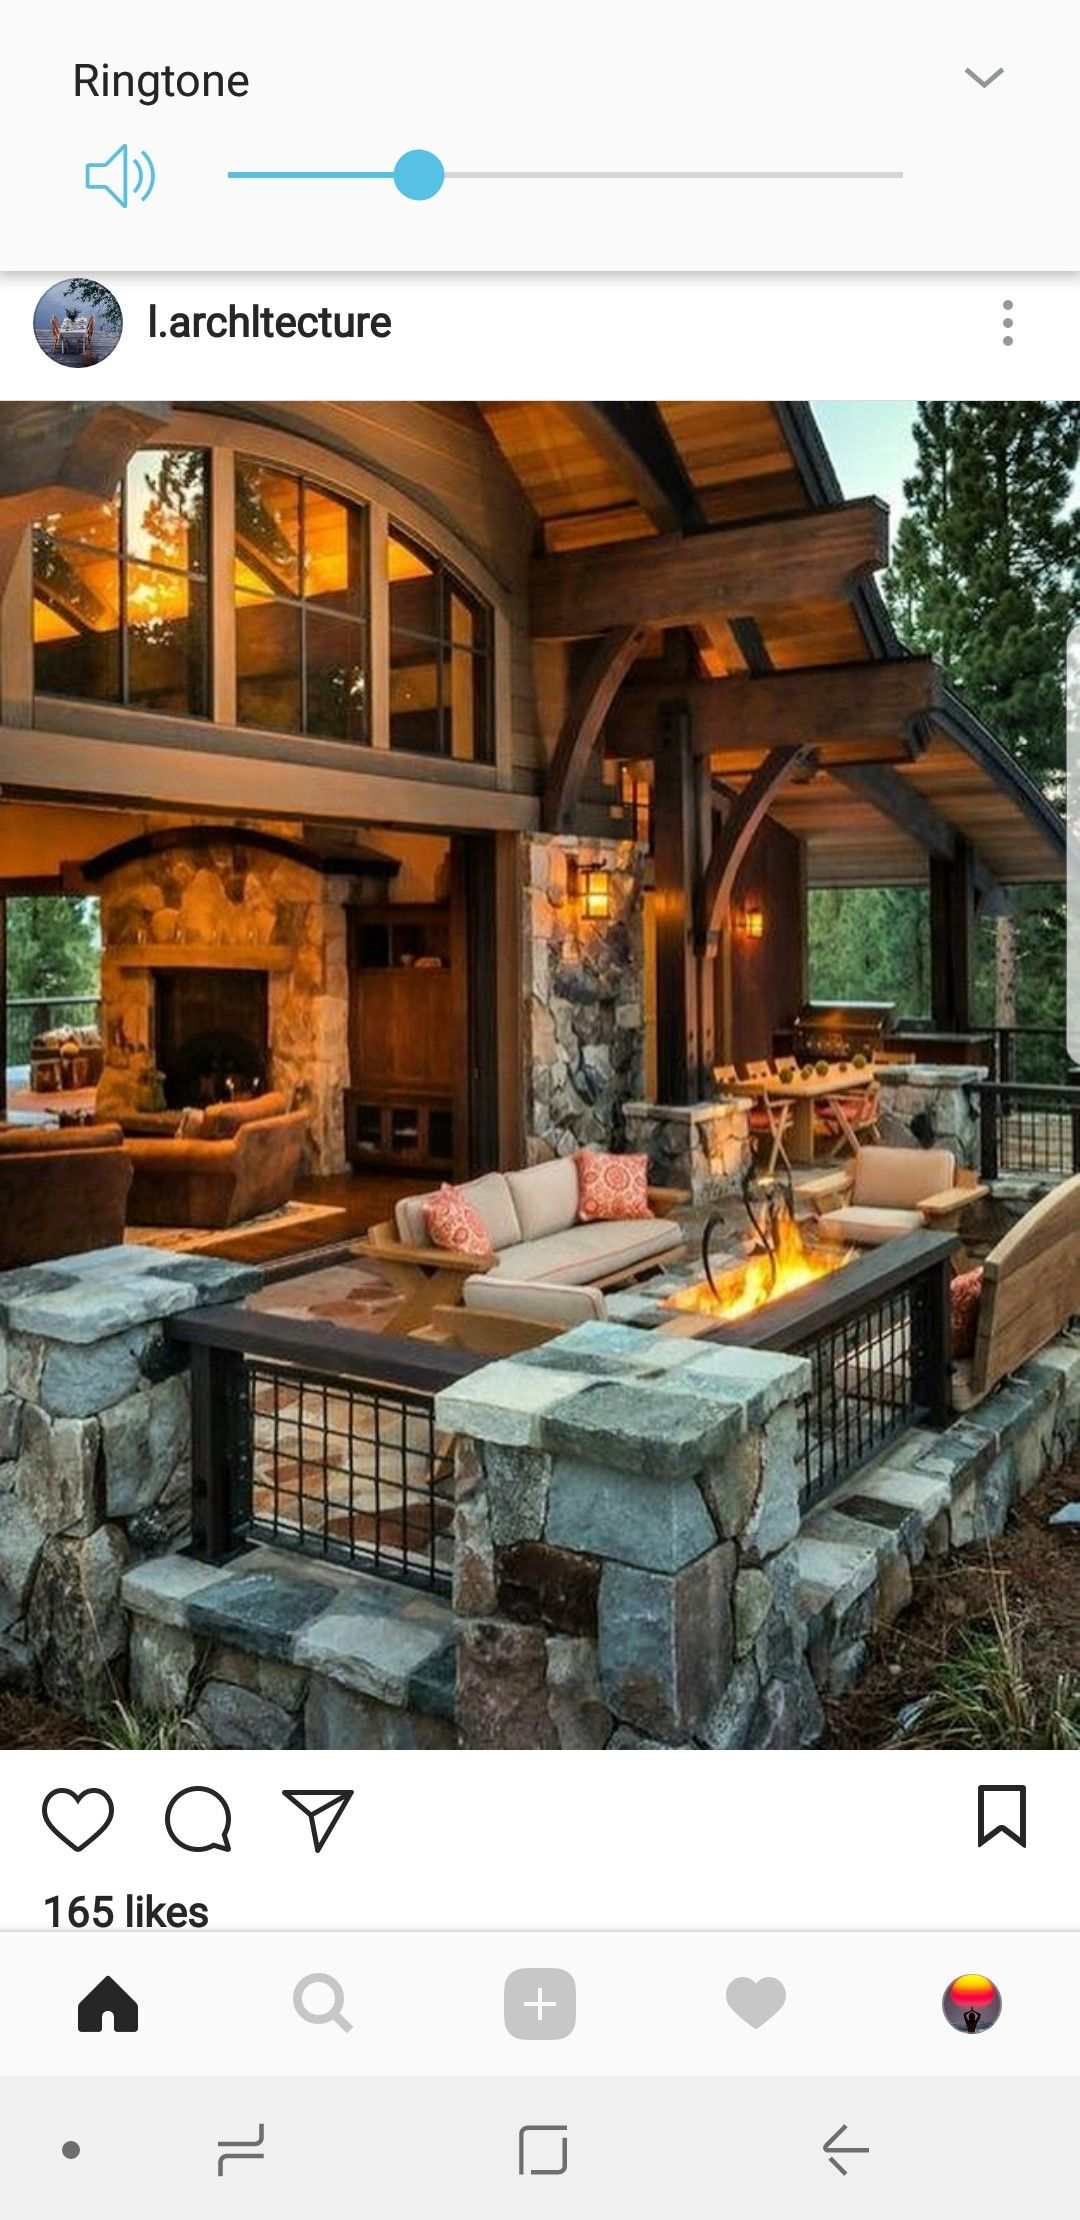 Gorgeous home in North Carolina designed by